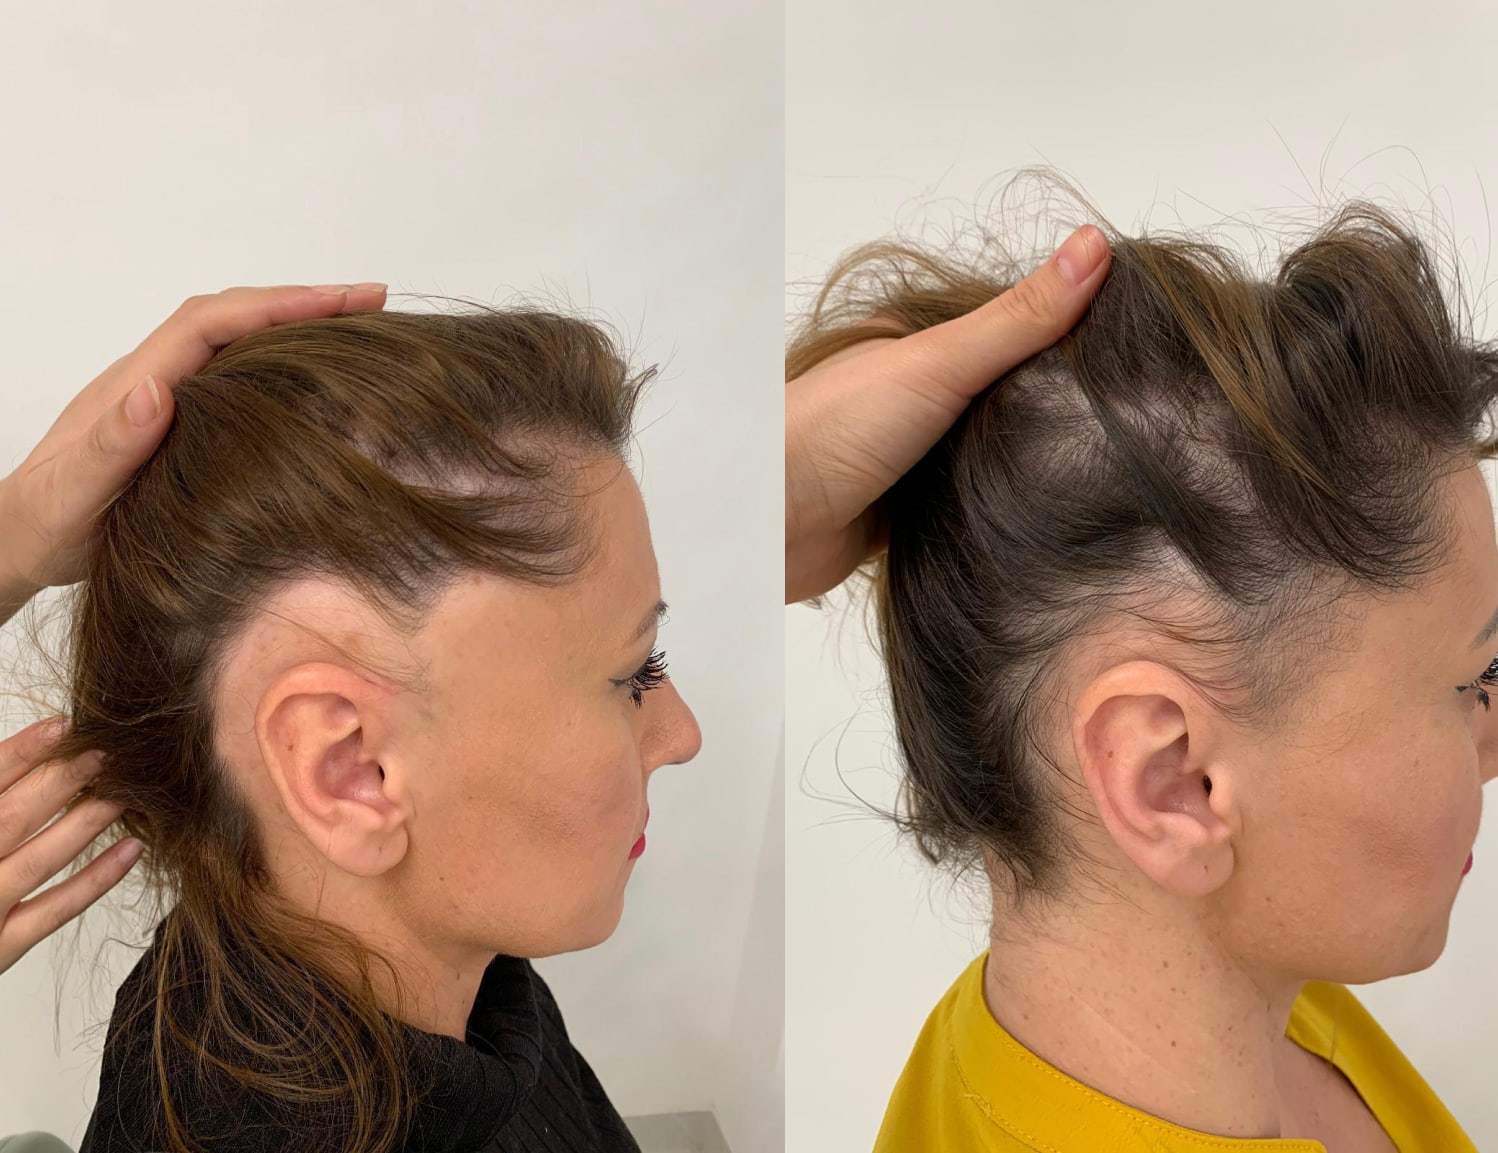 Hair loss for women results